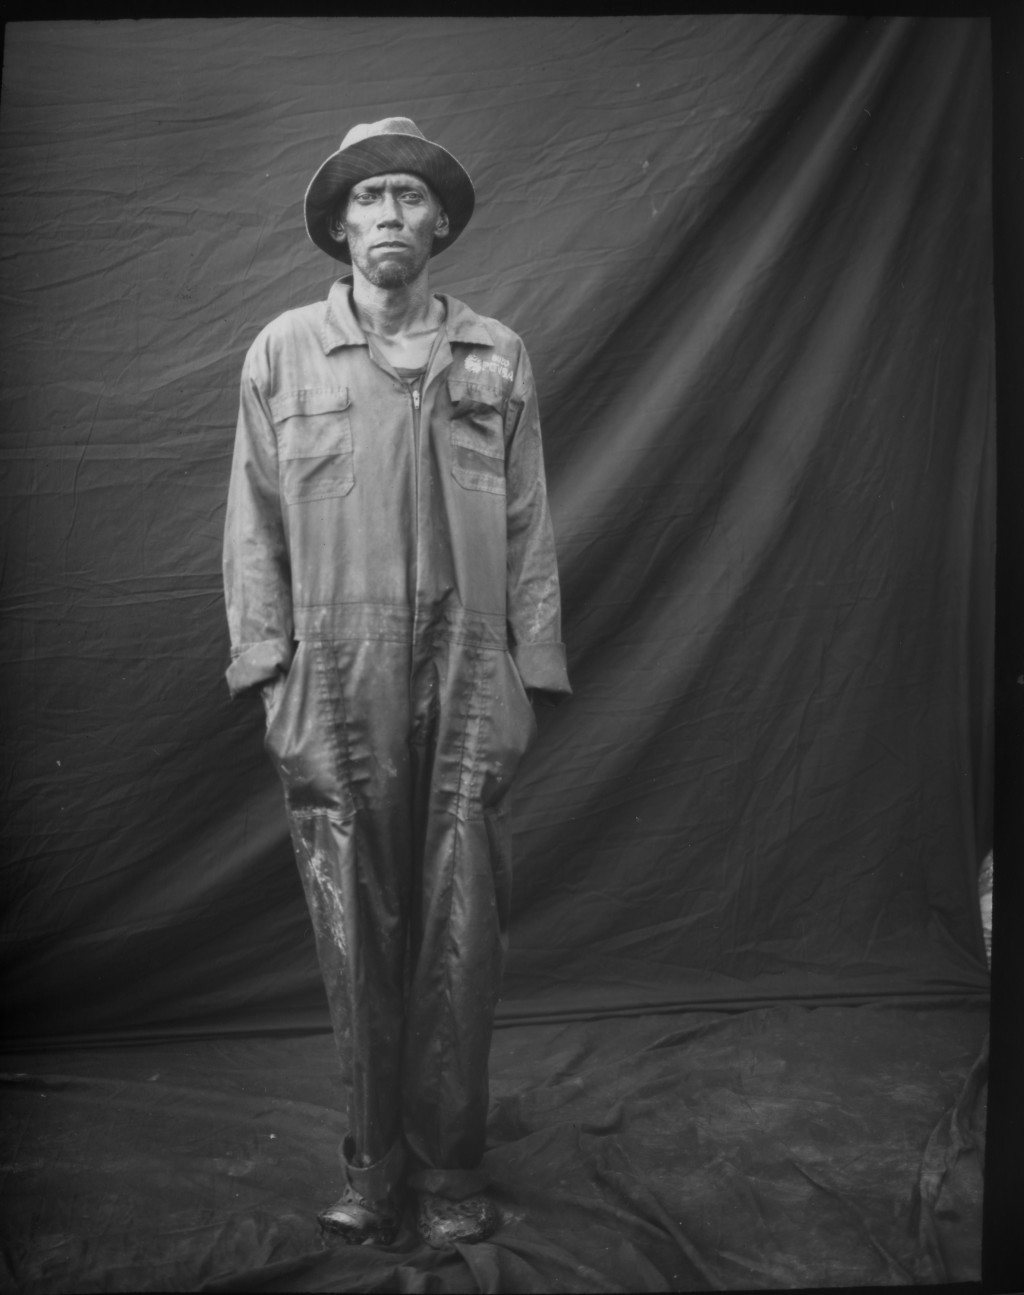 Former oil worker David Ortiz poses for a portrait in one of his old PDVSA uniforms, which he uses to work as a fisherman, after a day's work on oil-c